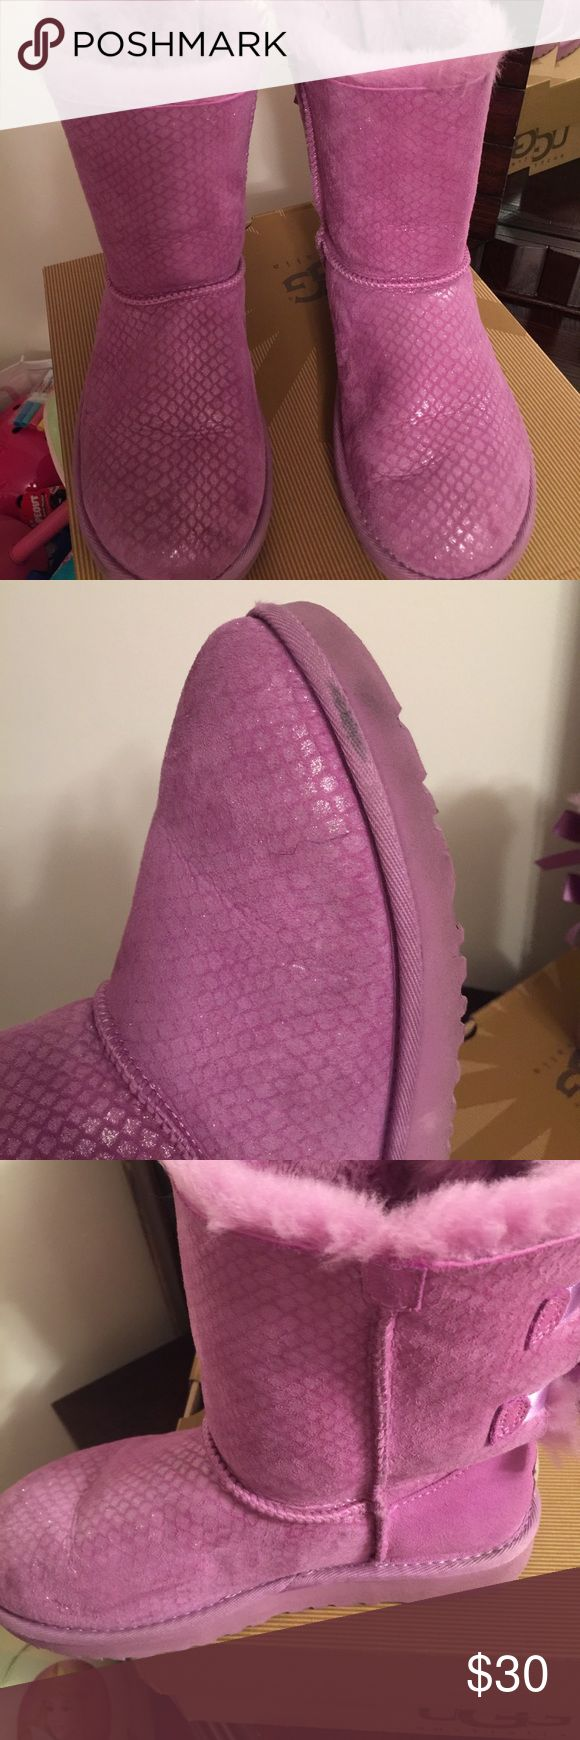 Kids Bailey Bow Splash Uggs Gently worn lavender Uggs for girls UGG Shoes Boots